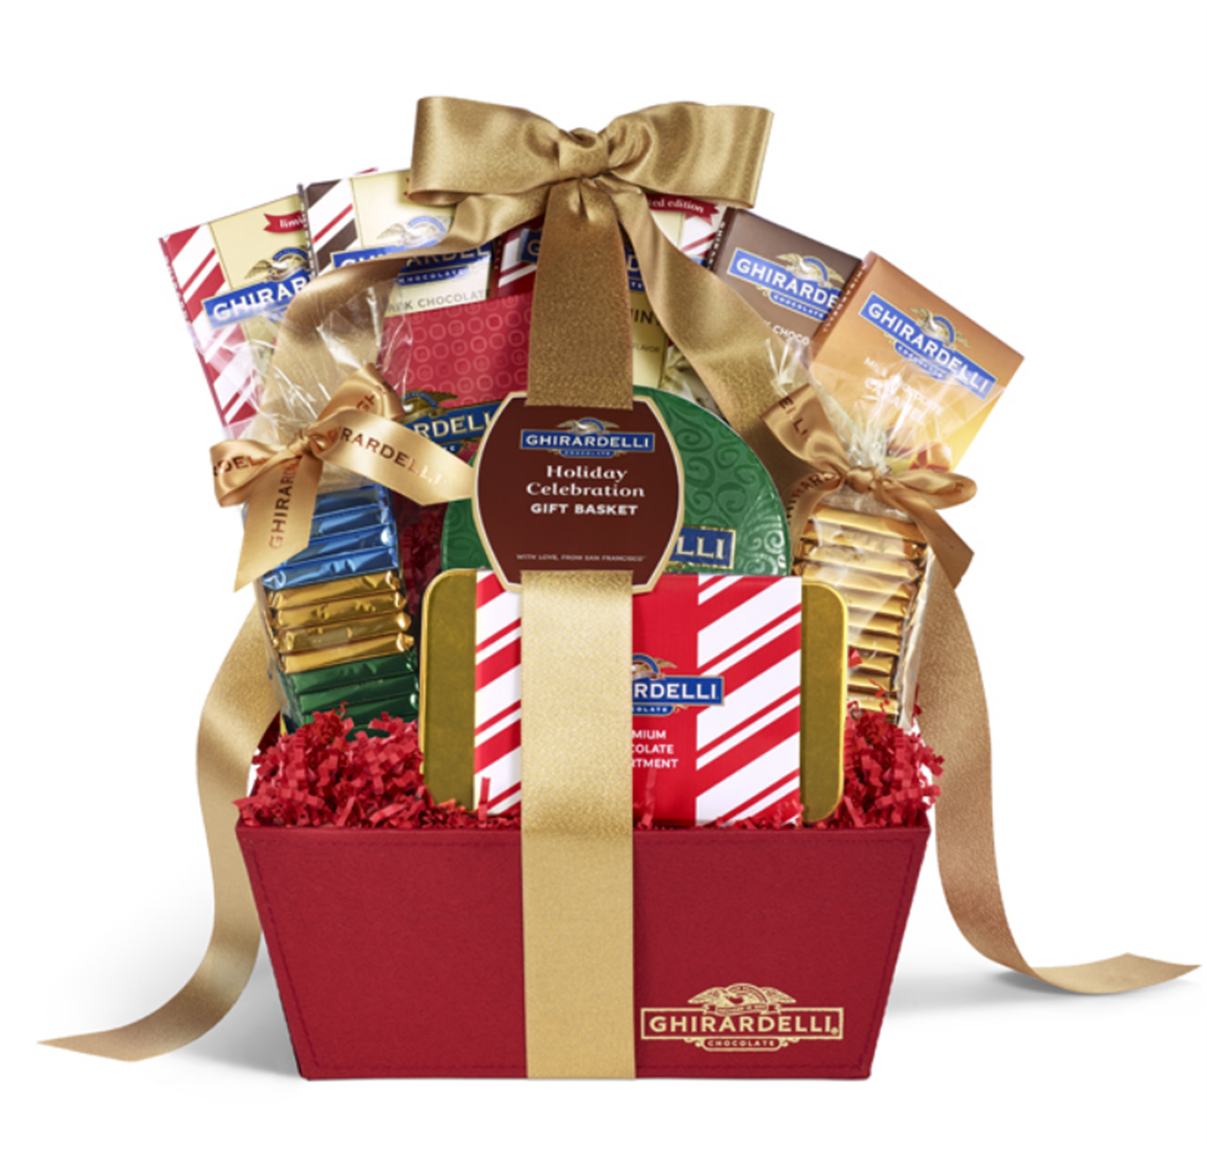 Ghirardelli – Up to 60% OFF Valentine's Day items!